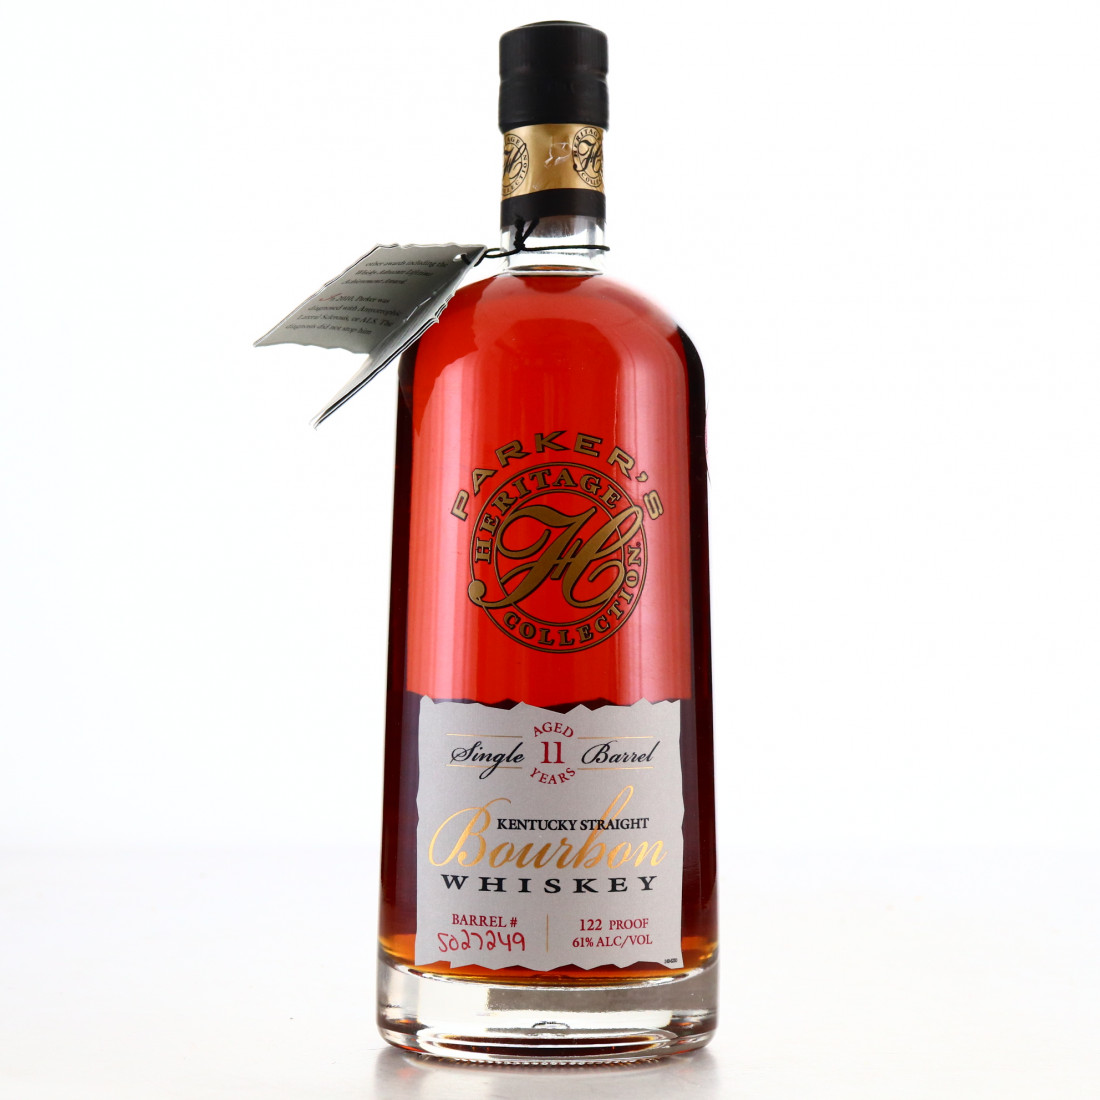 Parker's Heritage Collection 11 Year Old Single Barrel Bourbon